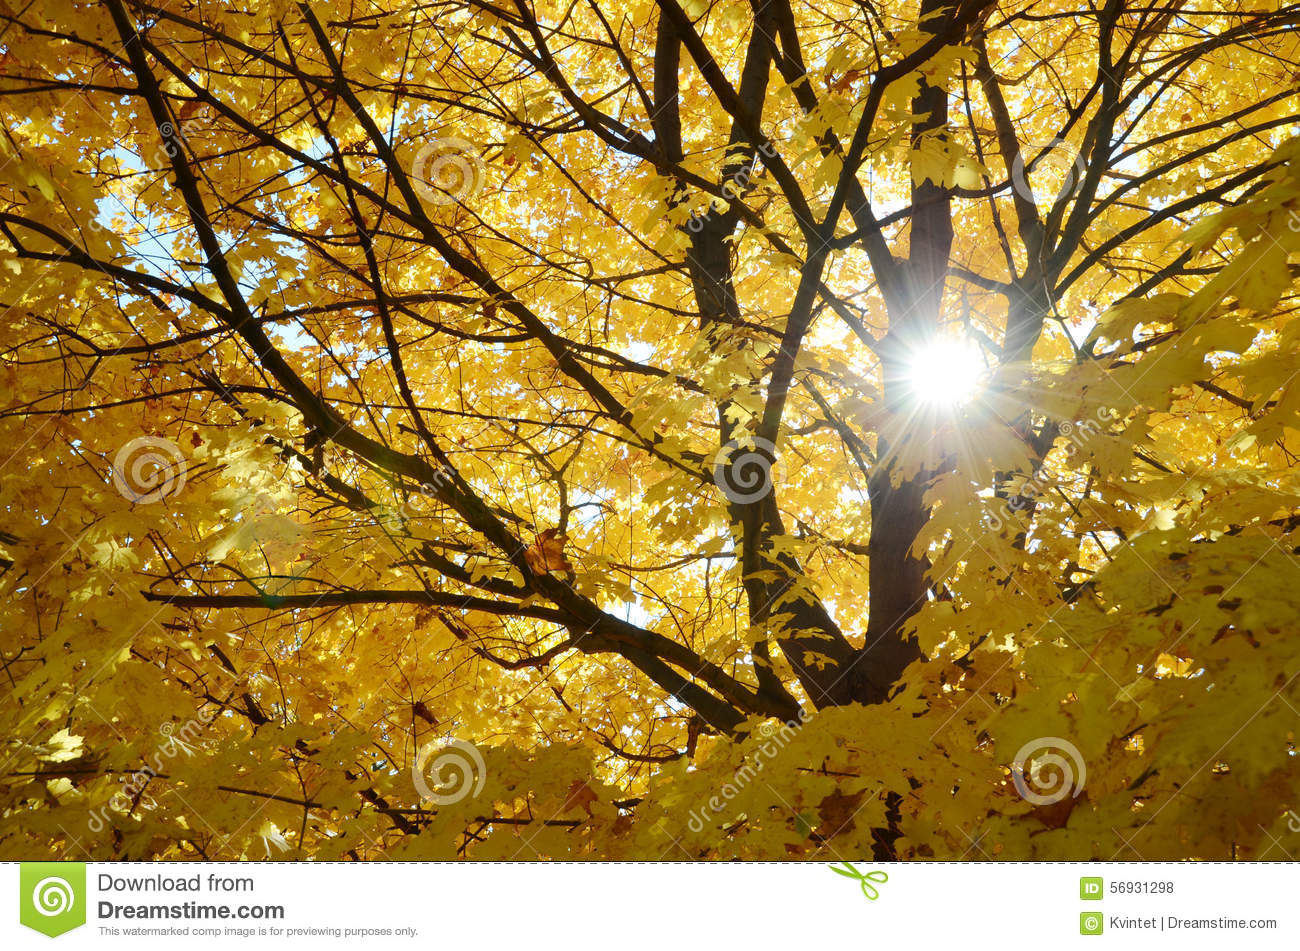 Abstract background from leaves and branches of the maple tree and the sun